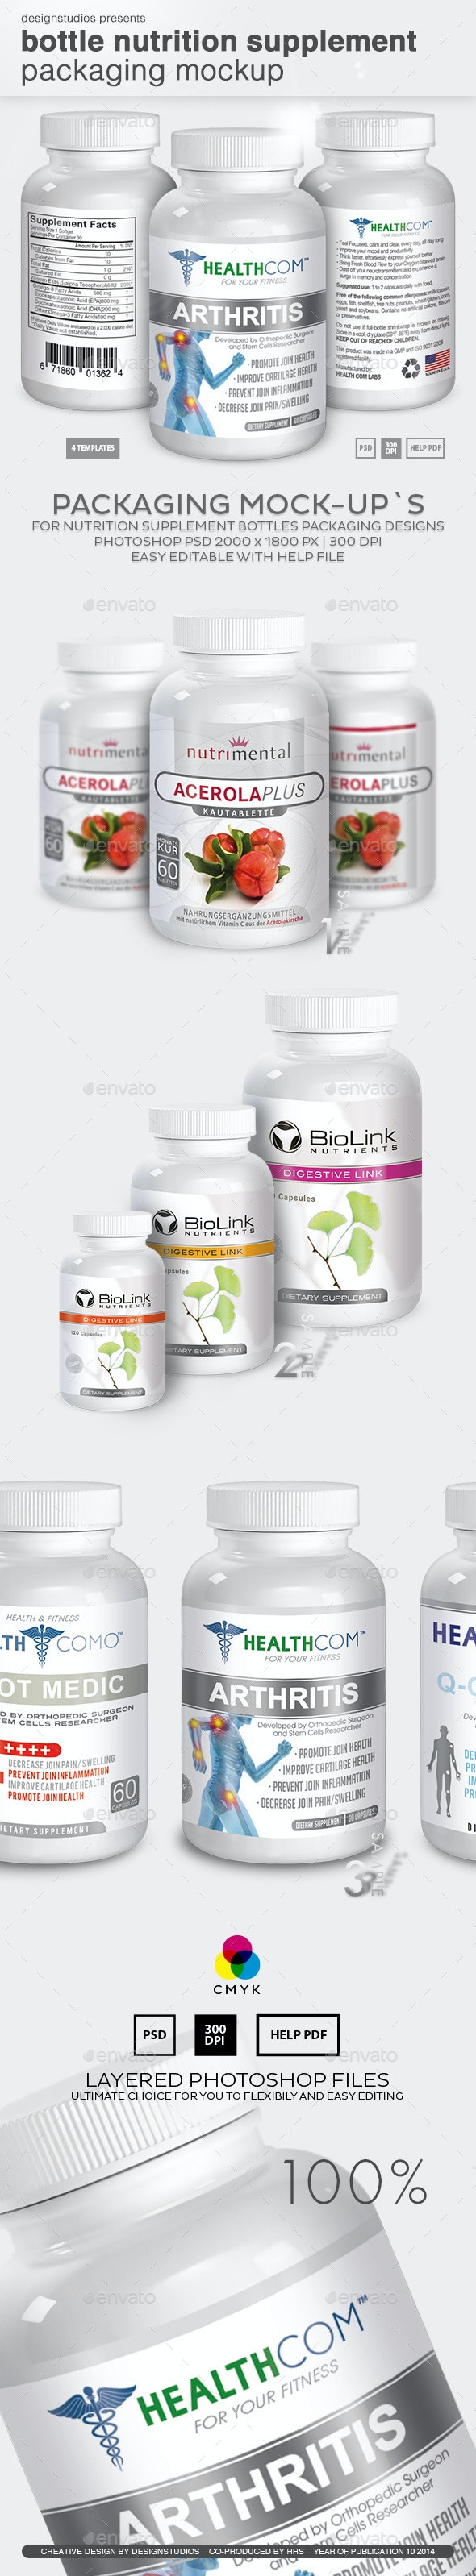 Bottle Nutrition Supplement Packaging Mock-Up - Miscellaneous Packaging